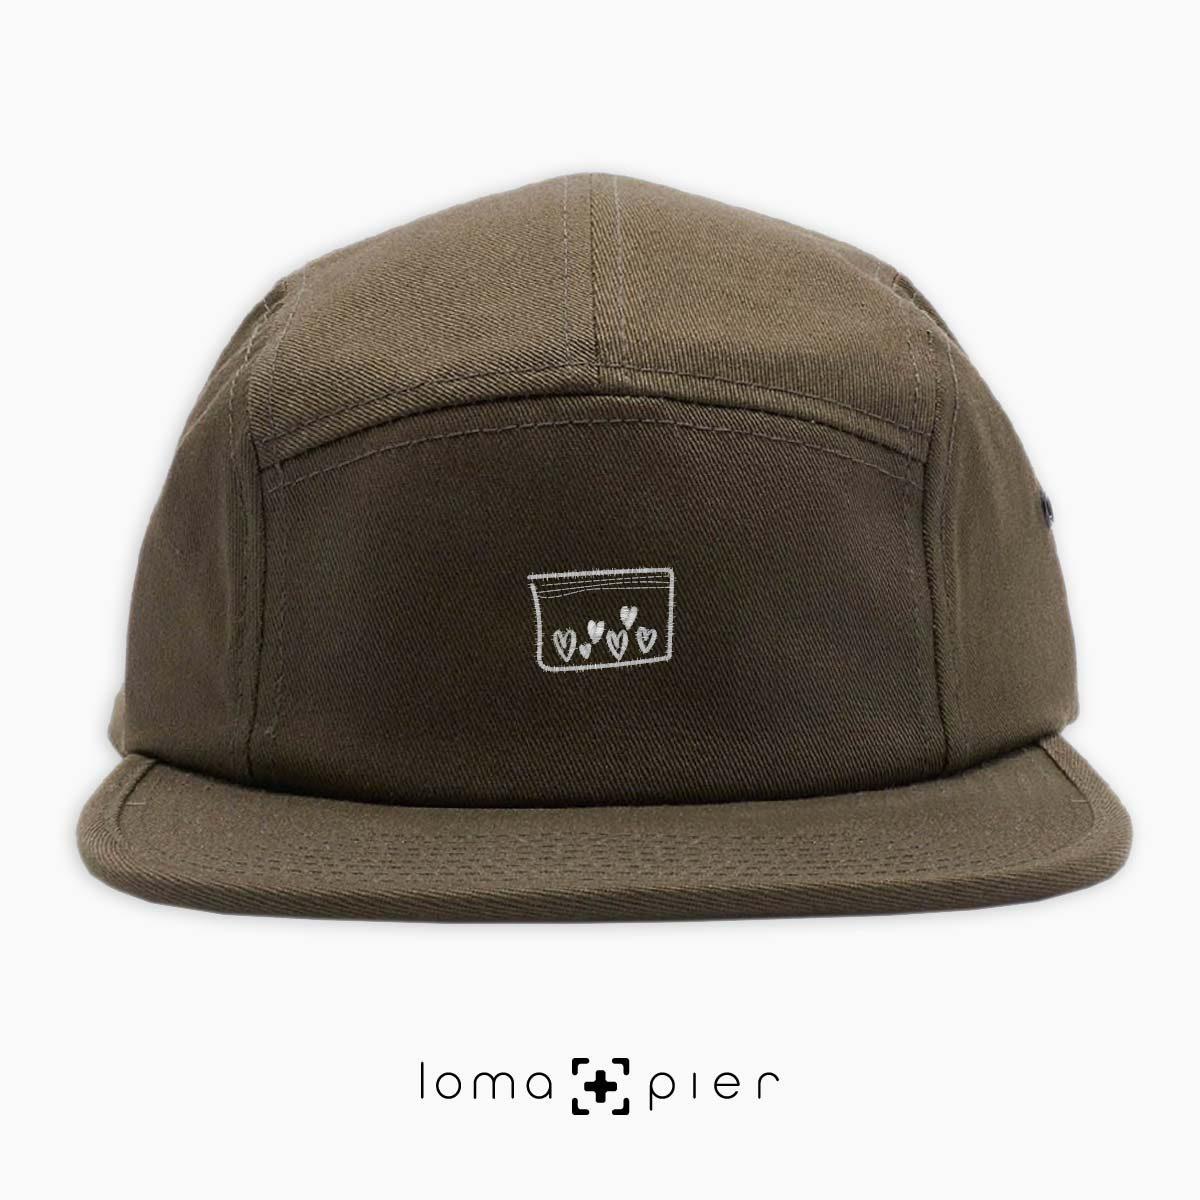 LOVE DRUG icon embroidered on an olive green cotton 5-panel hat with white thread by loma+pier hat store